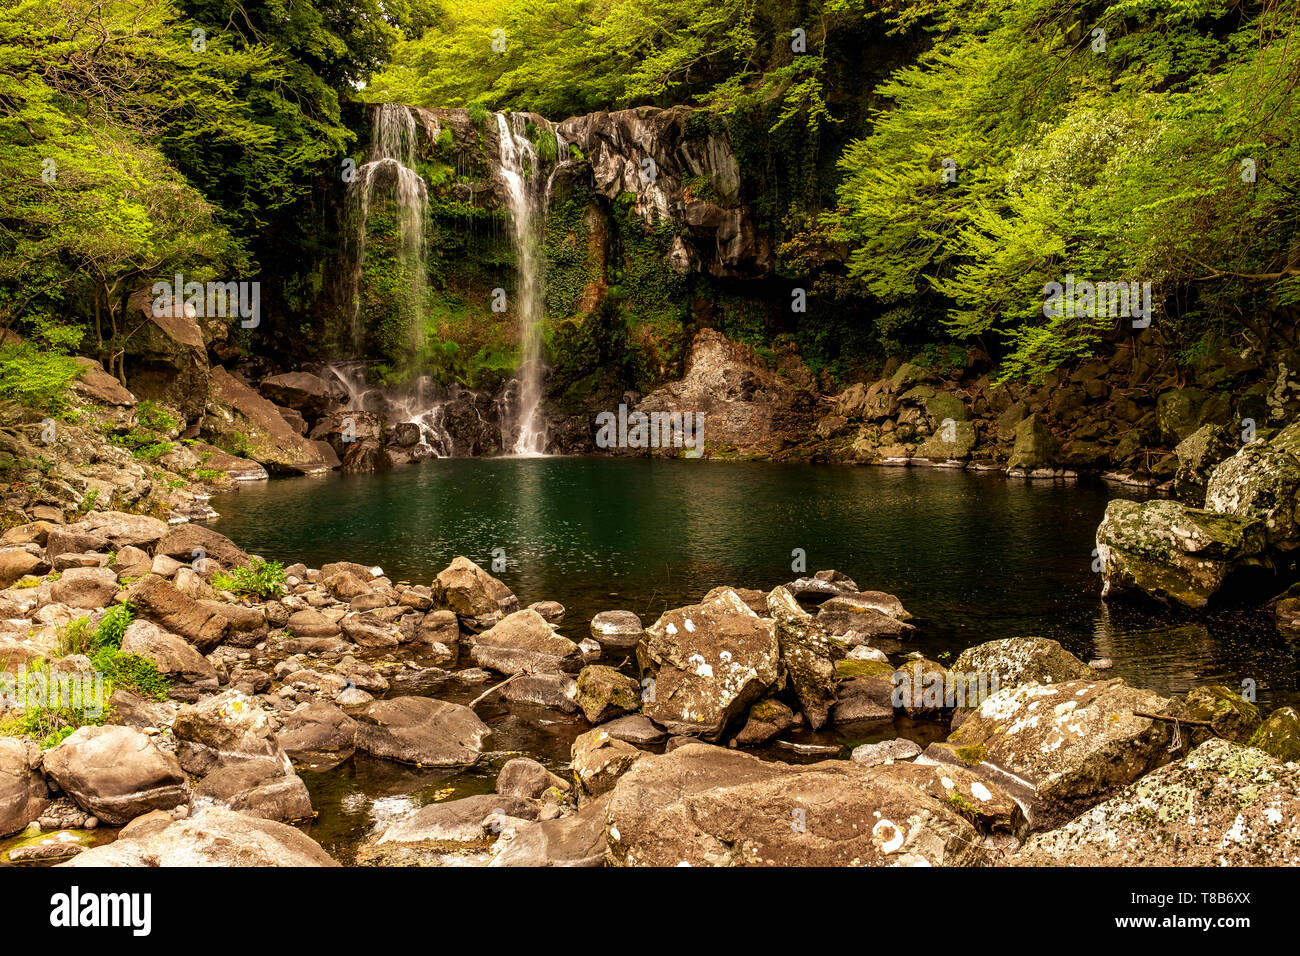 landscape view with trees and waterfall, Jeju, South Korea - Stock Image